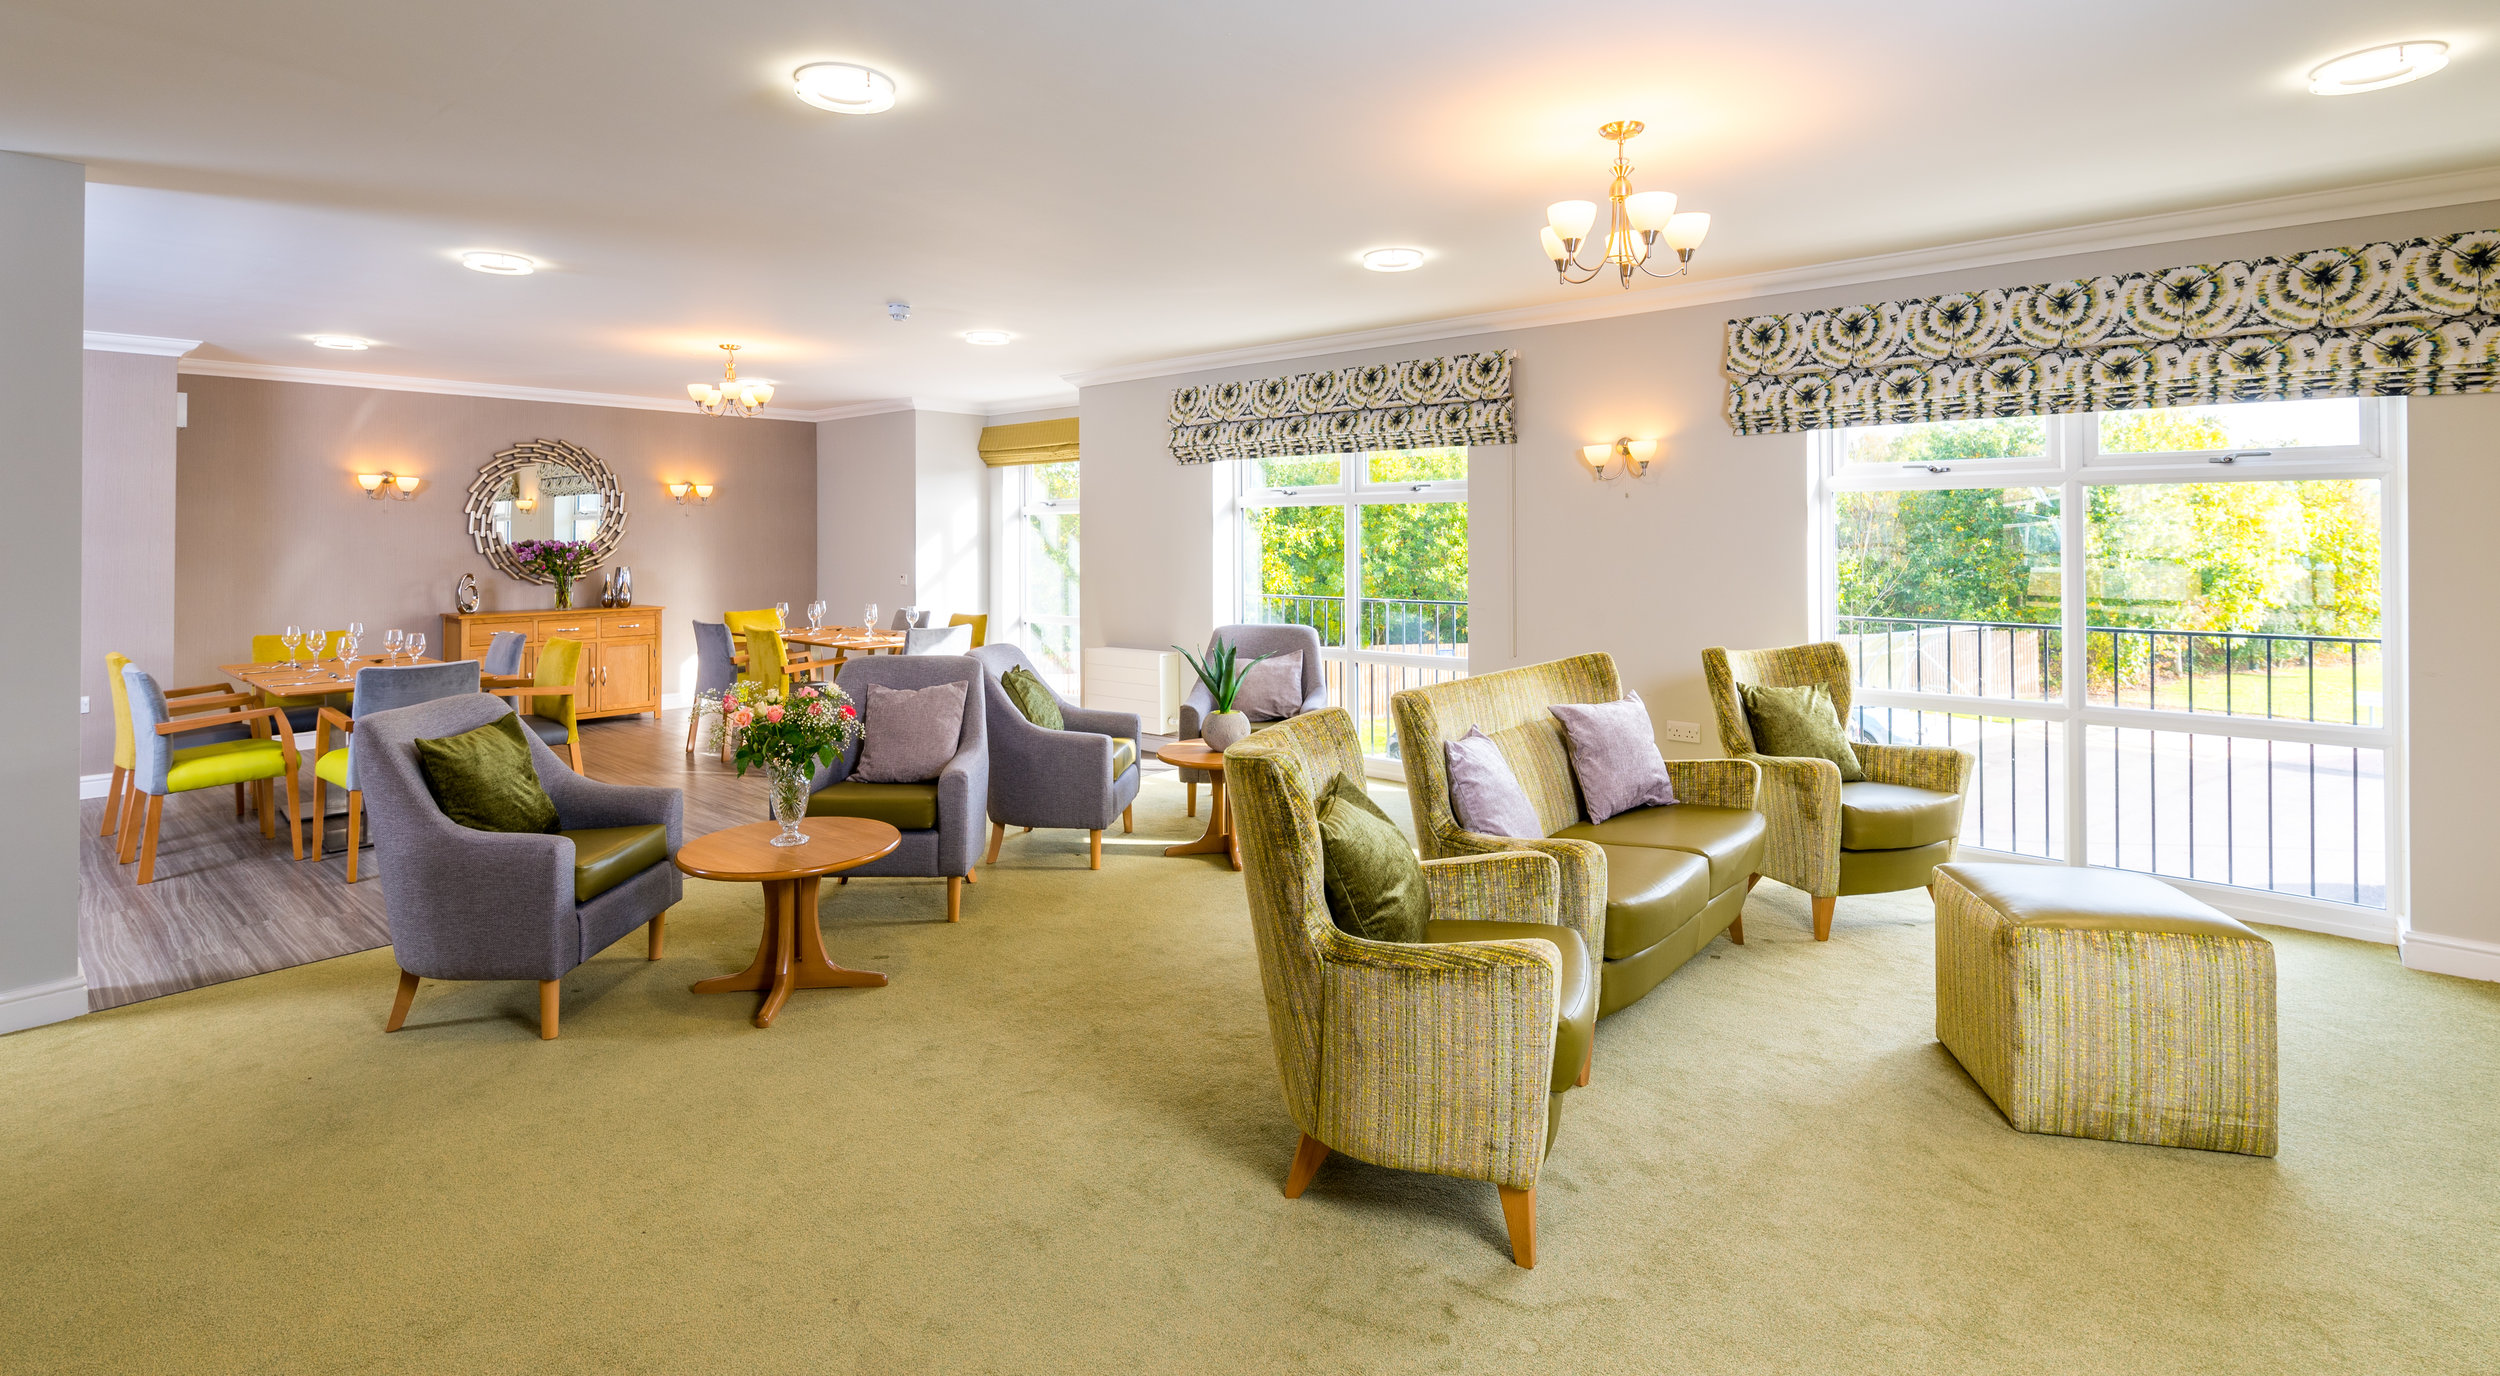 Interior of Care Home lounge area